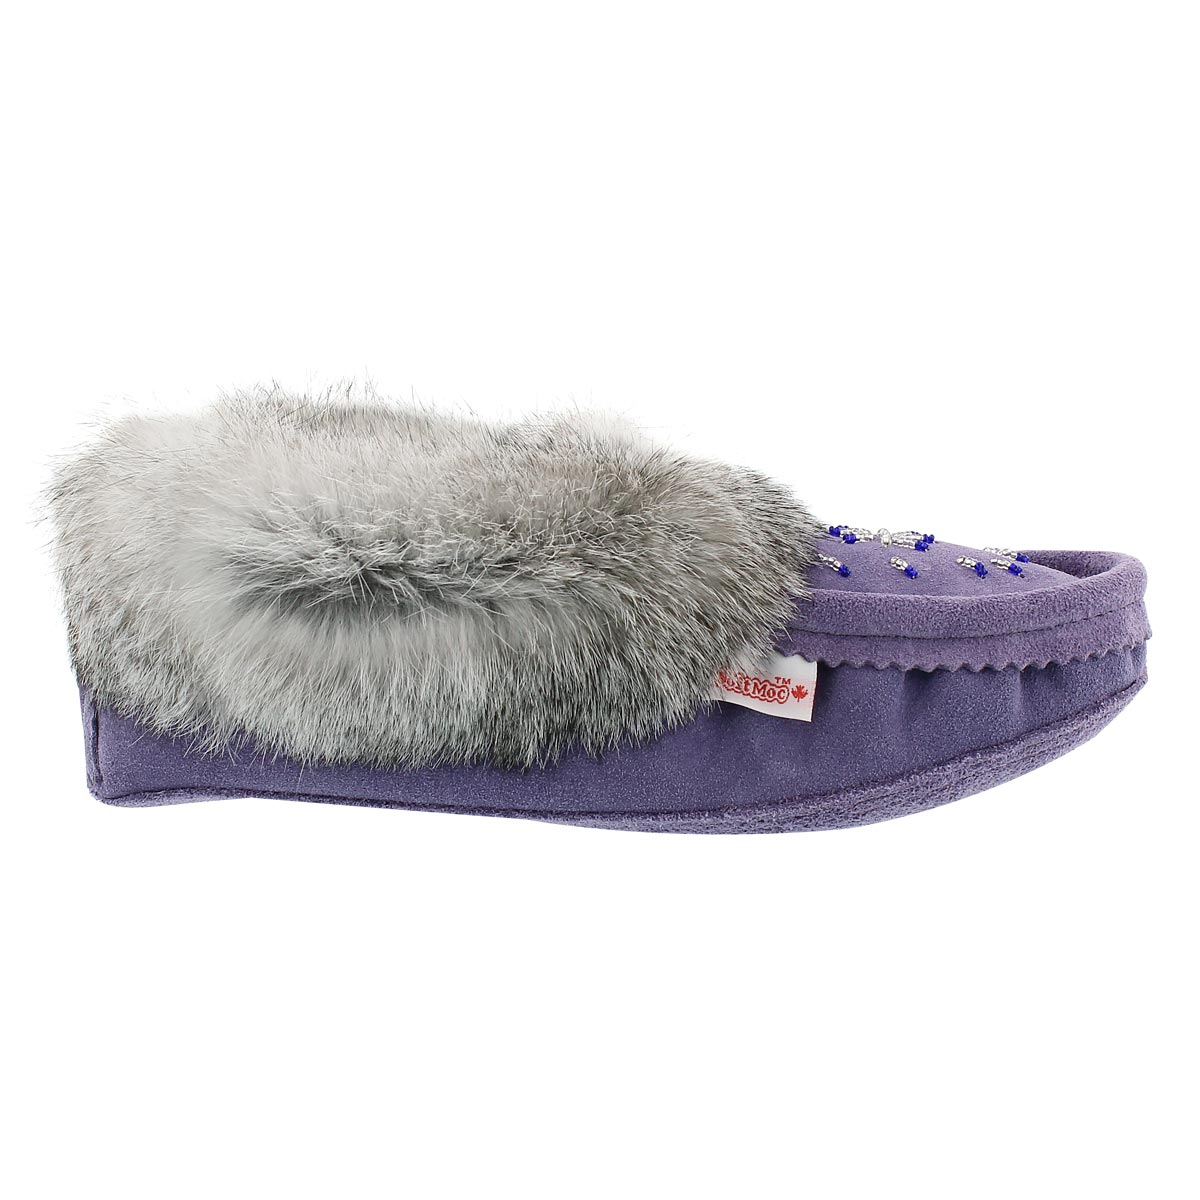 Lds purple rabbit fur moccasin